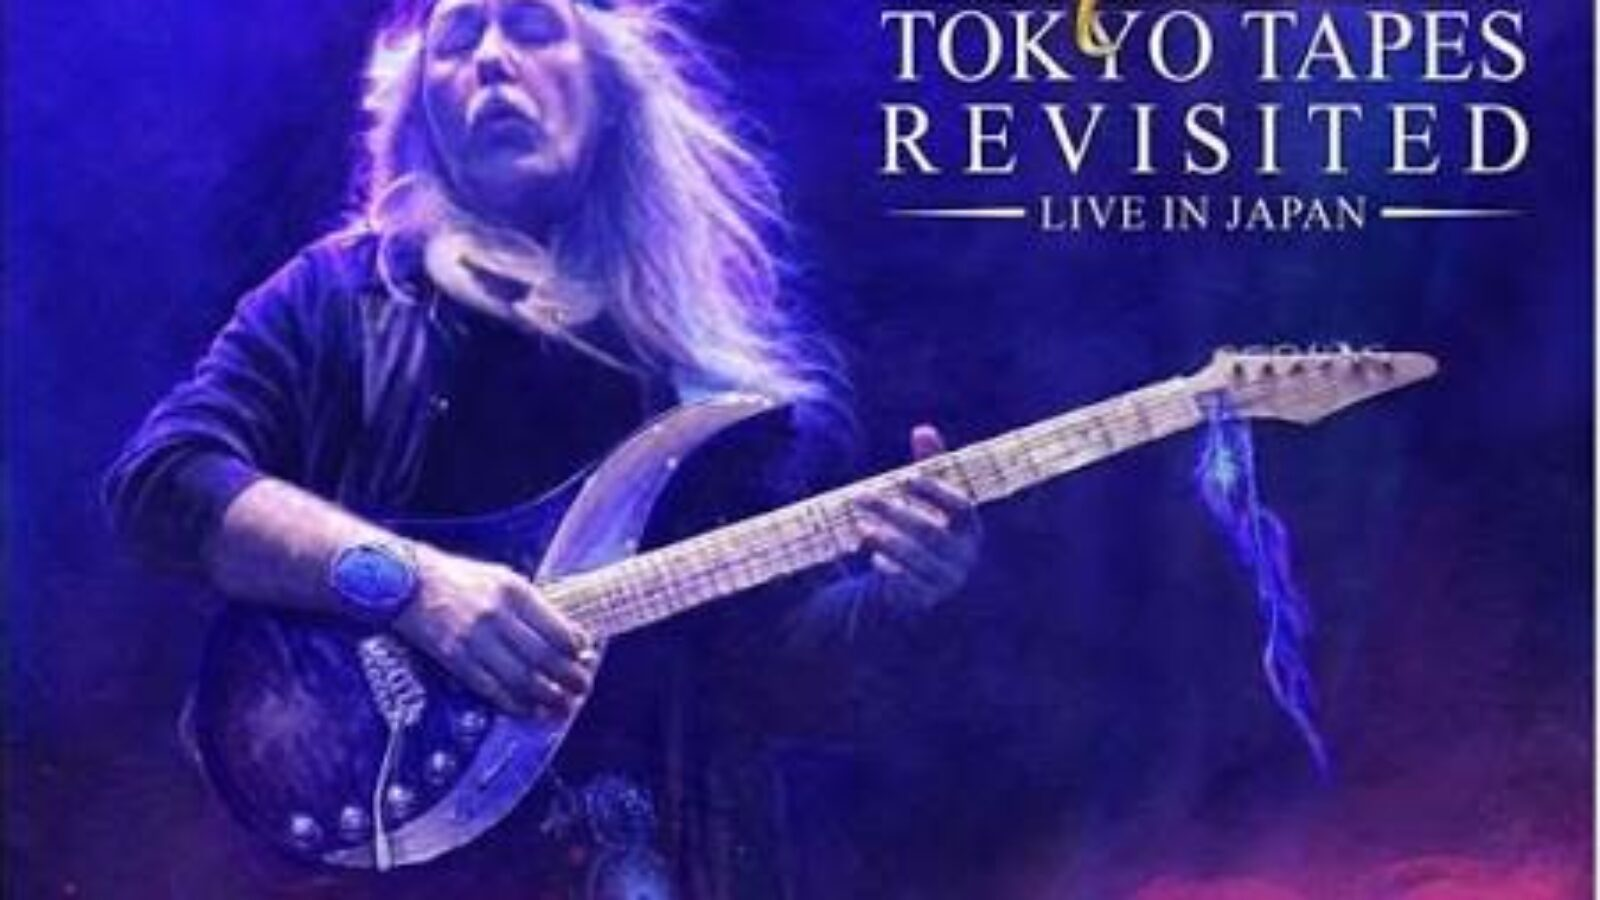 OXMOX CD-Tipp: ULI JON ROTH – Tokyo Tapes Revisited – Live In Japan